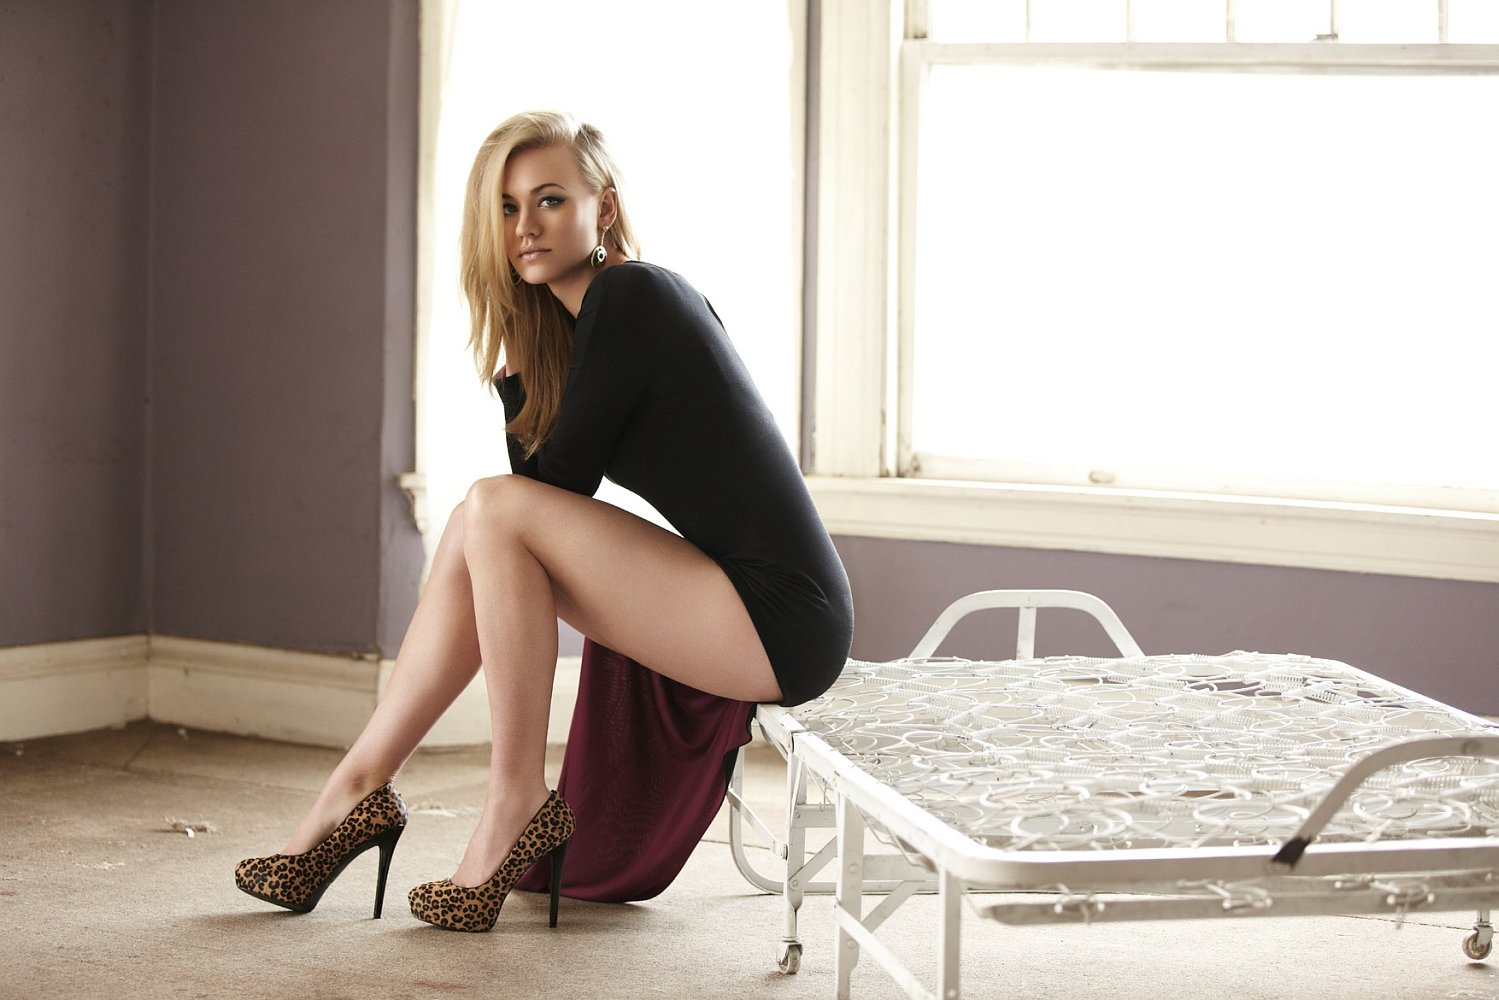 Yvonne Strahovski Legs Wallpaper Full HD 1499x1000